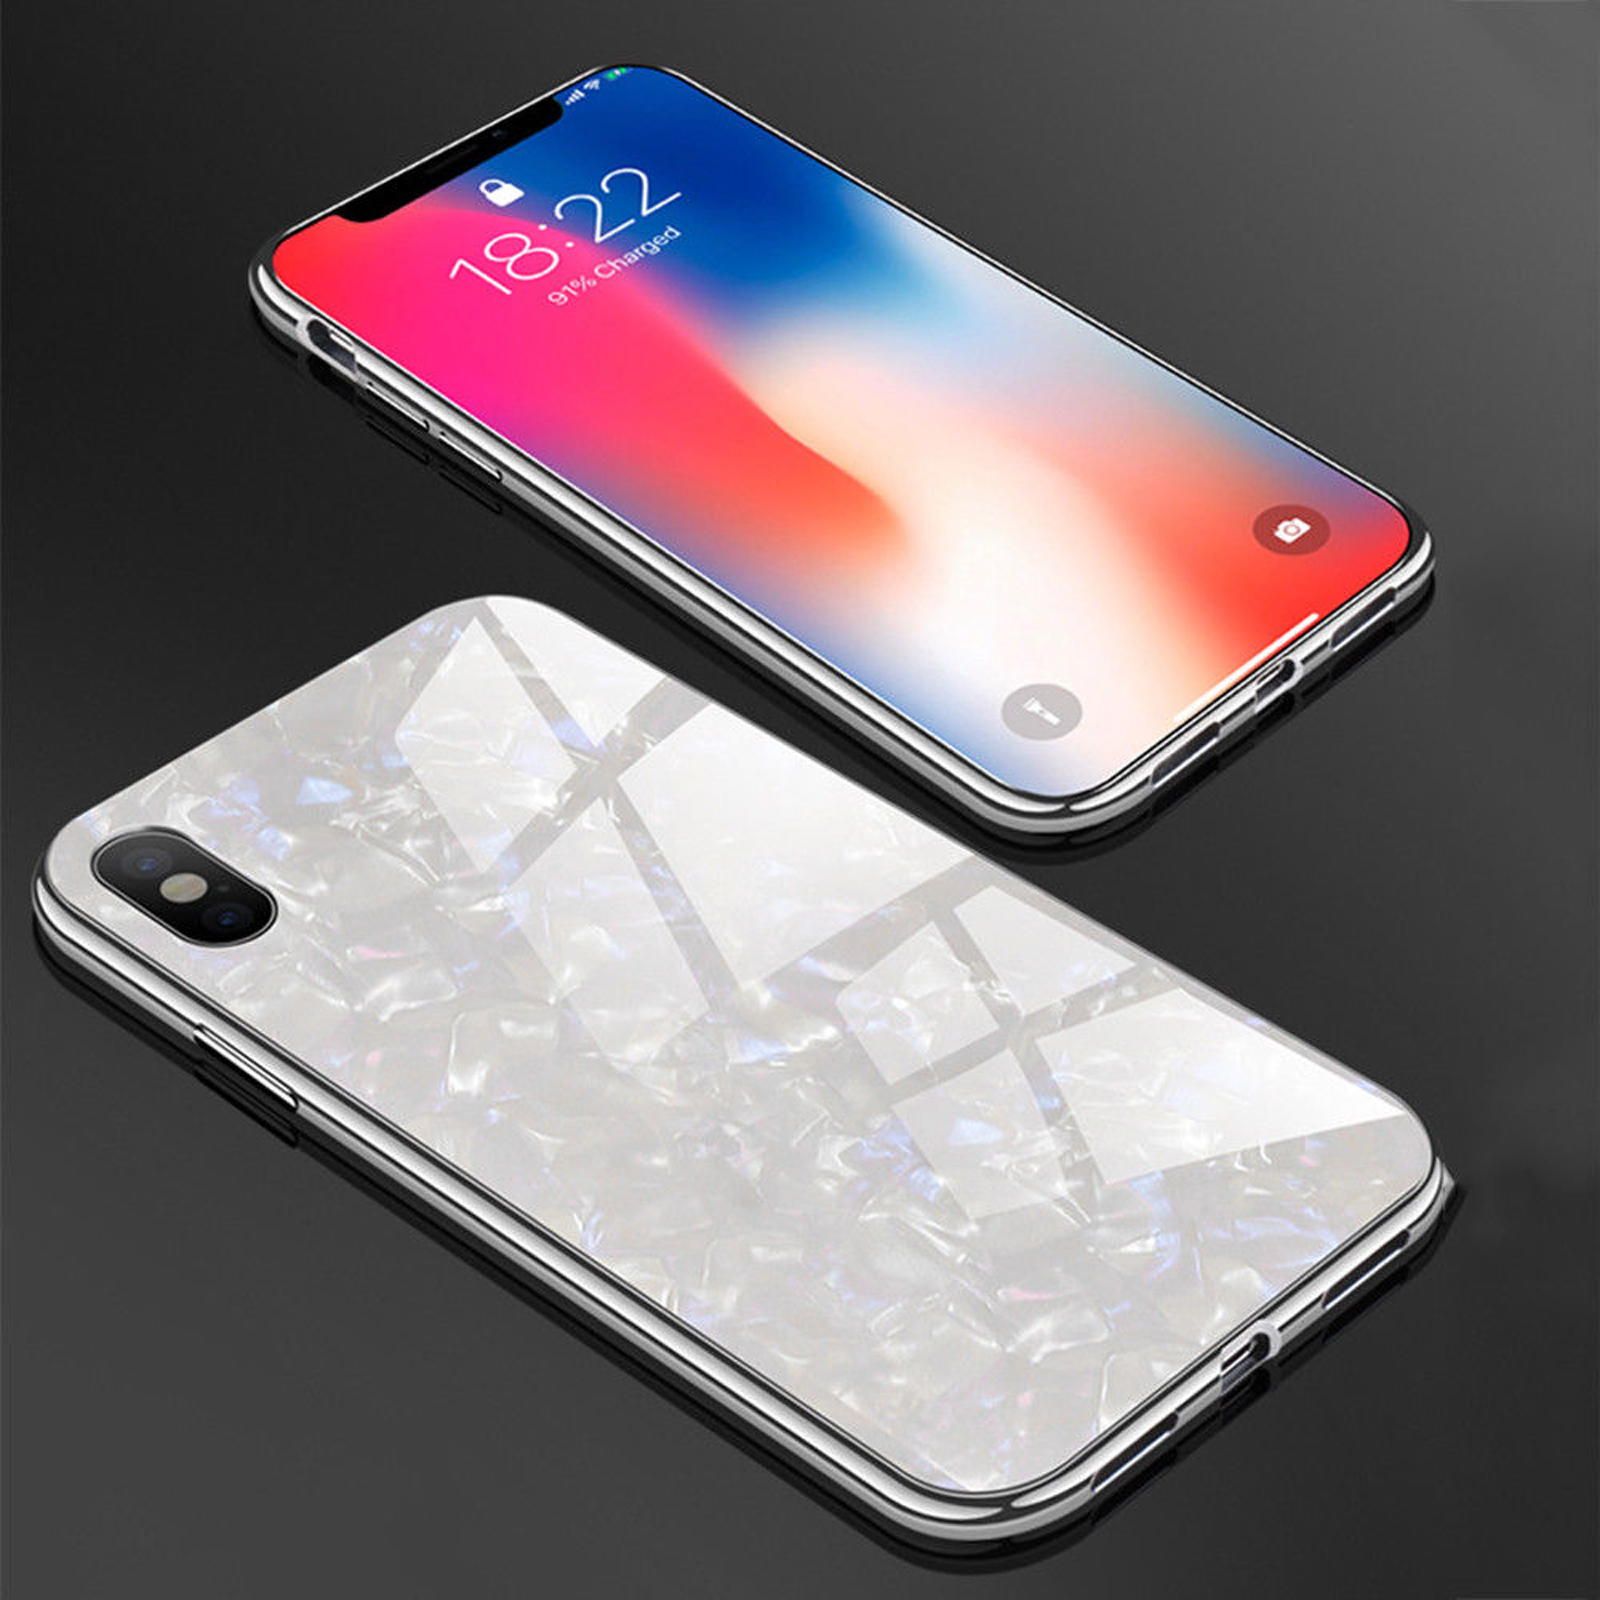 Luxury-Marble-Tempered-Glass-Case-Cover-For-Apple-iPhone-X-XS-XR-Max-10-8-7-6s-6 thumbnail 47